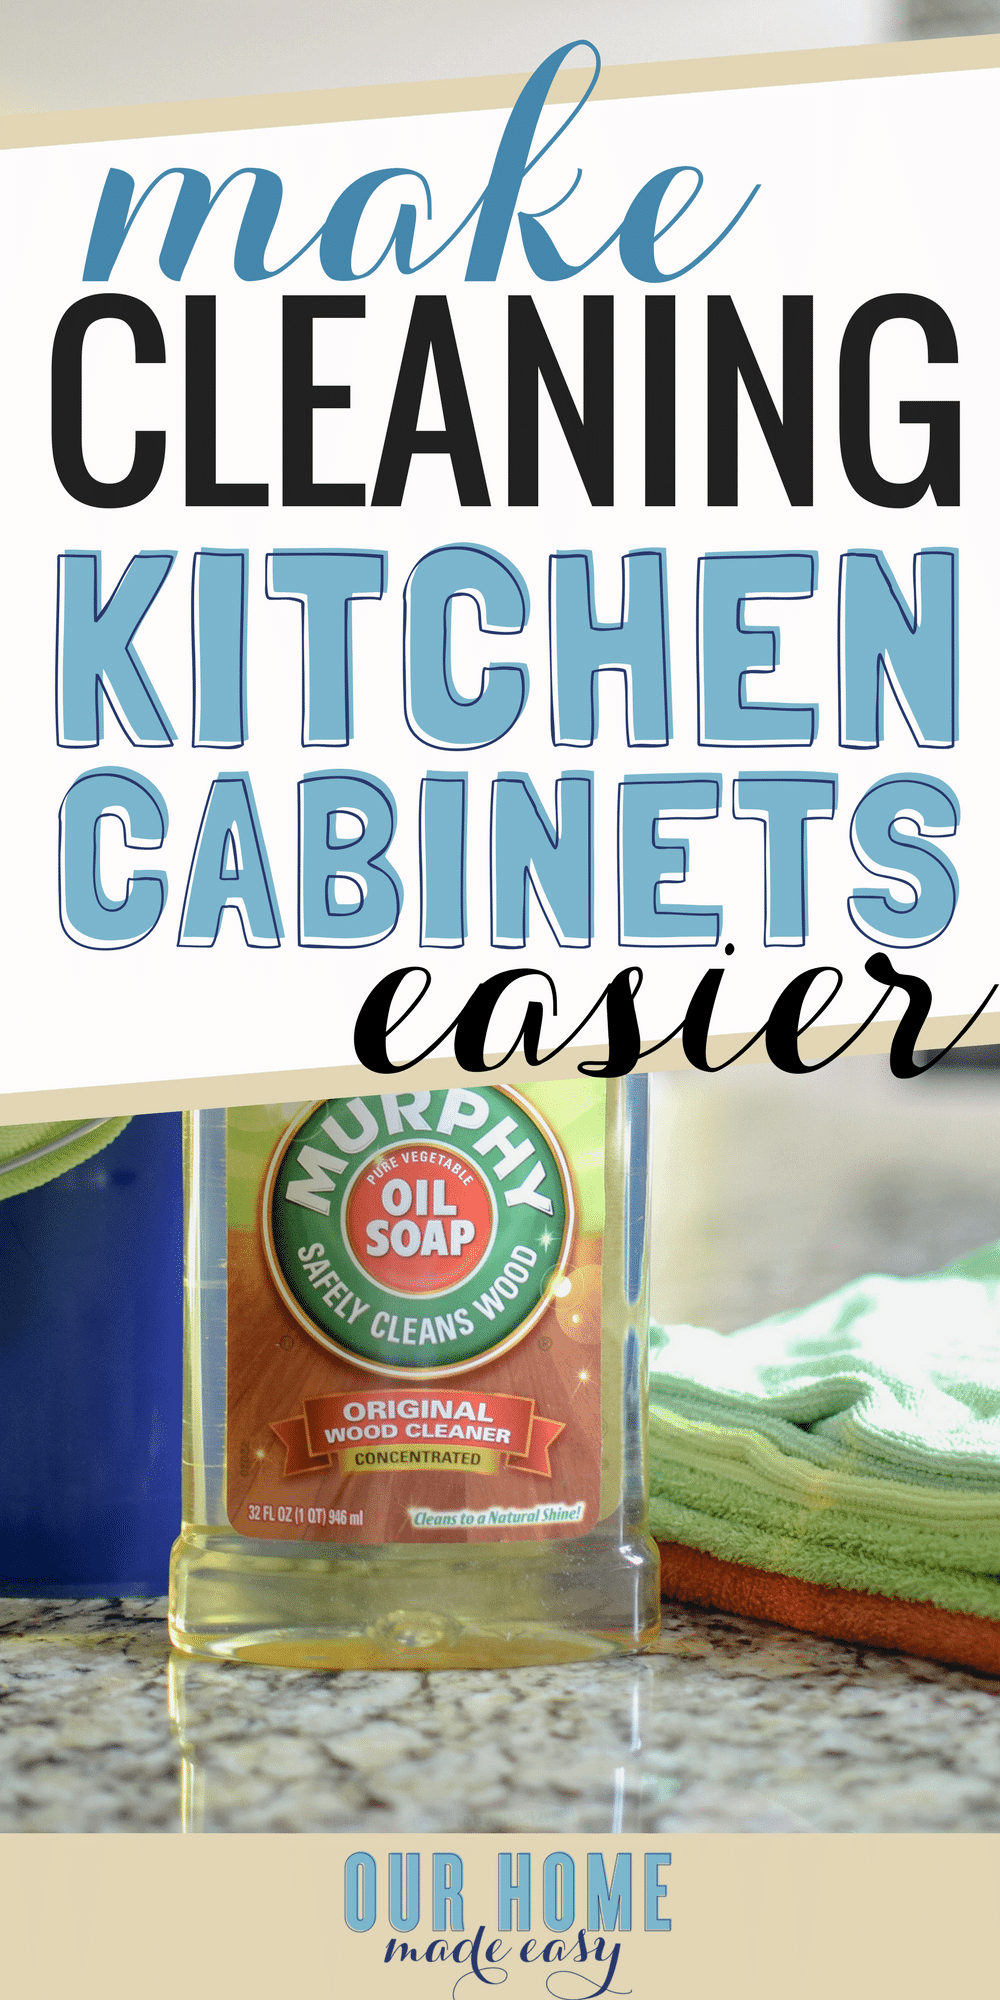 The Simplest Way to Clean Kitchen Cabinets • Our Home Made Easy